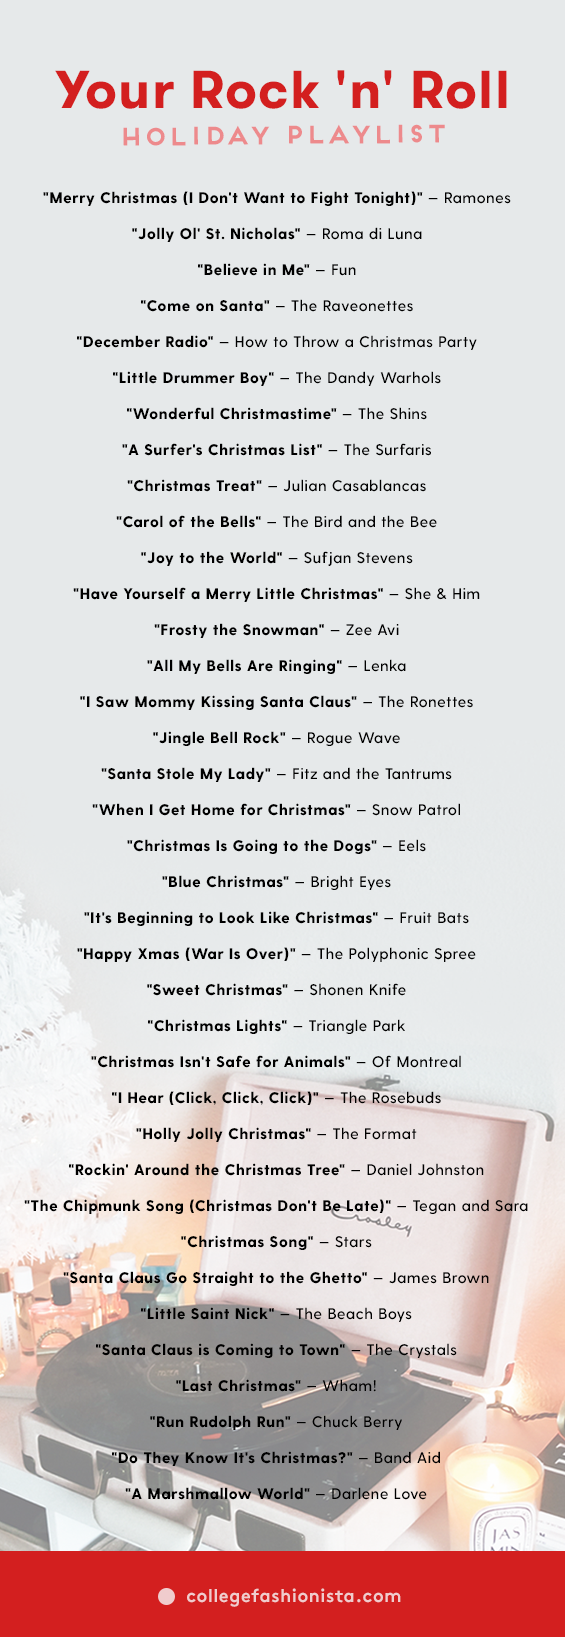 37 Rock 'n' Roll Songs to Soundtrack Your Holiday Season